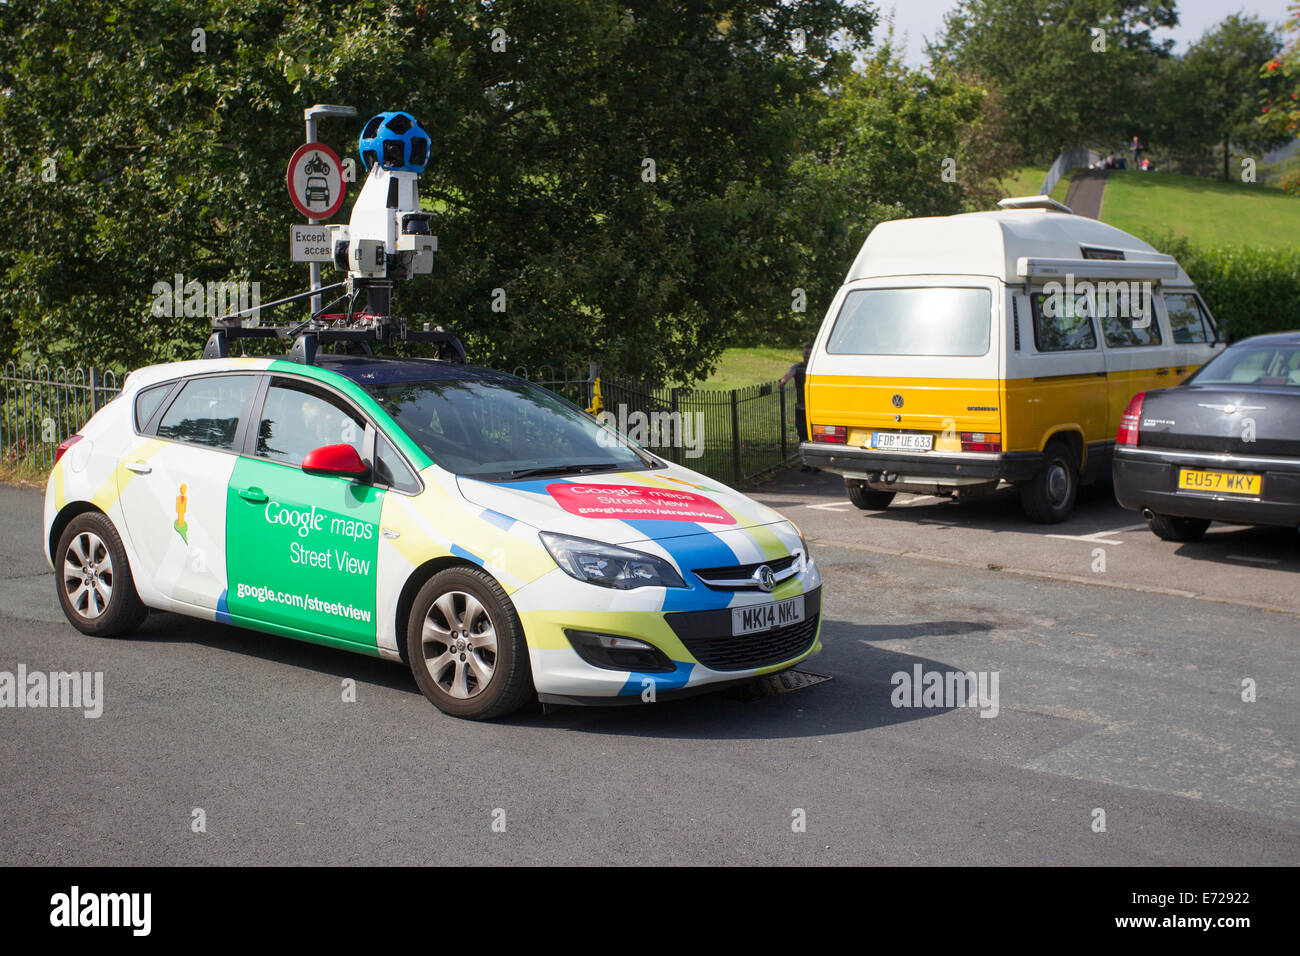 Google Maps Street View Camera Car In And Around Windermere Stock